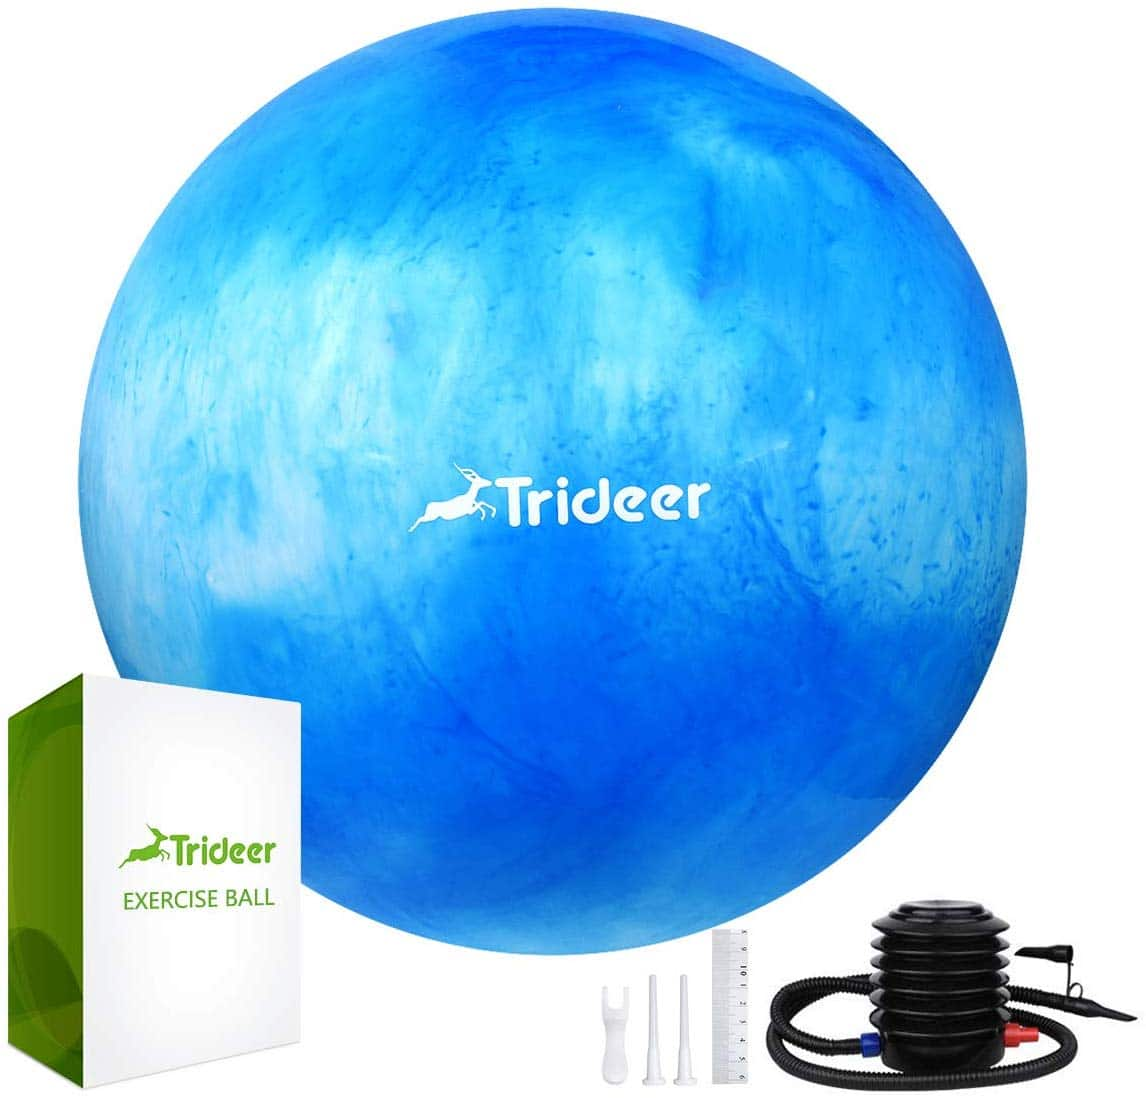 Trideer Exercise Ball (Multiple Color) for $6.49+FS